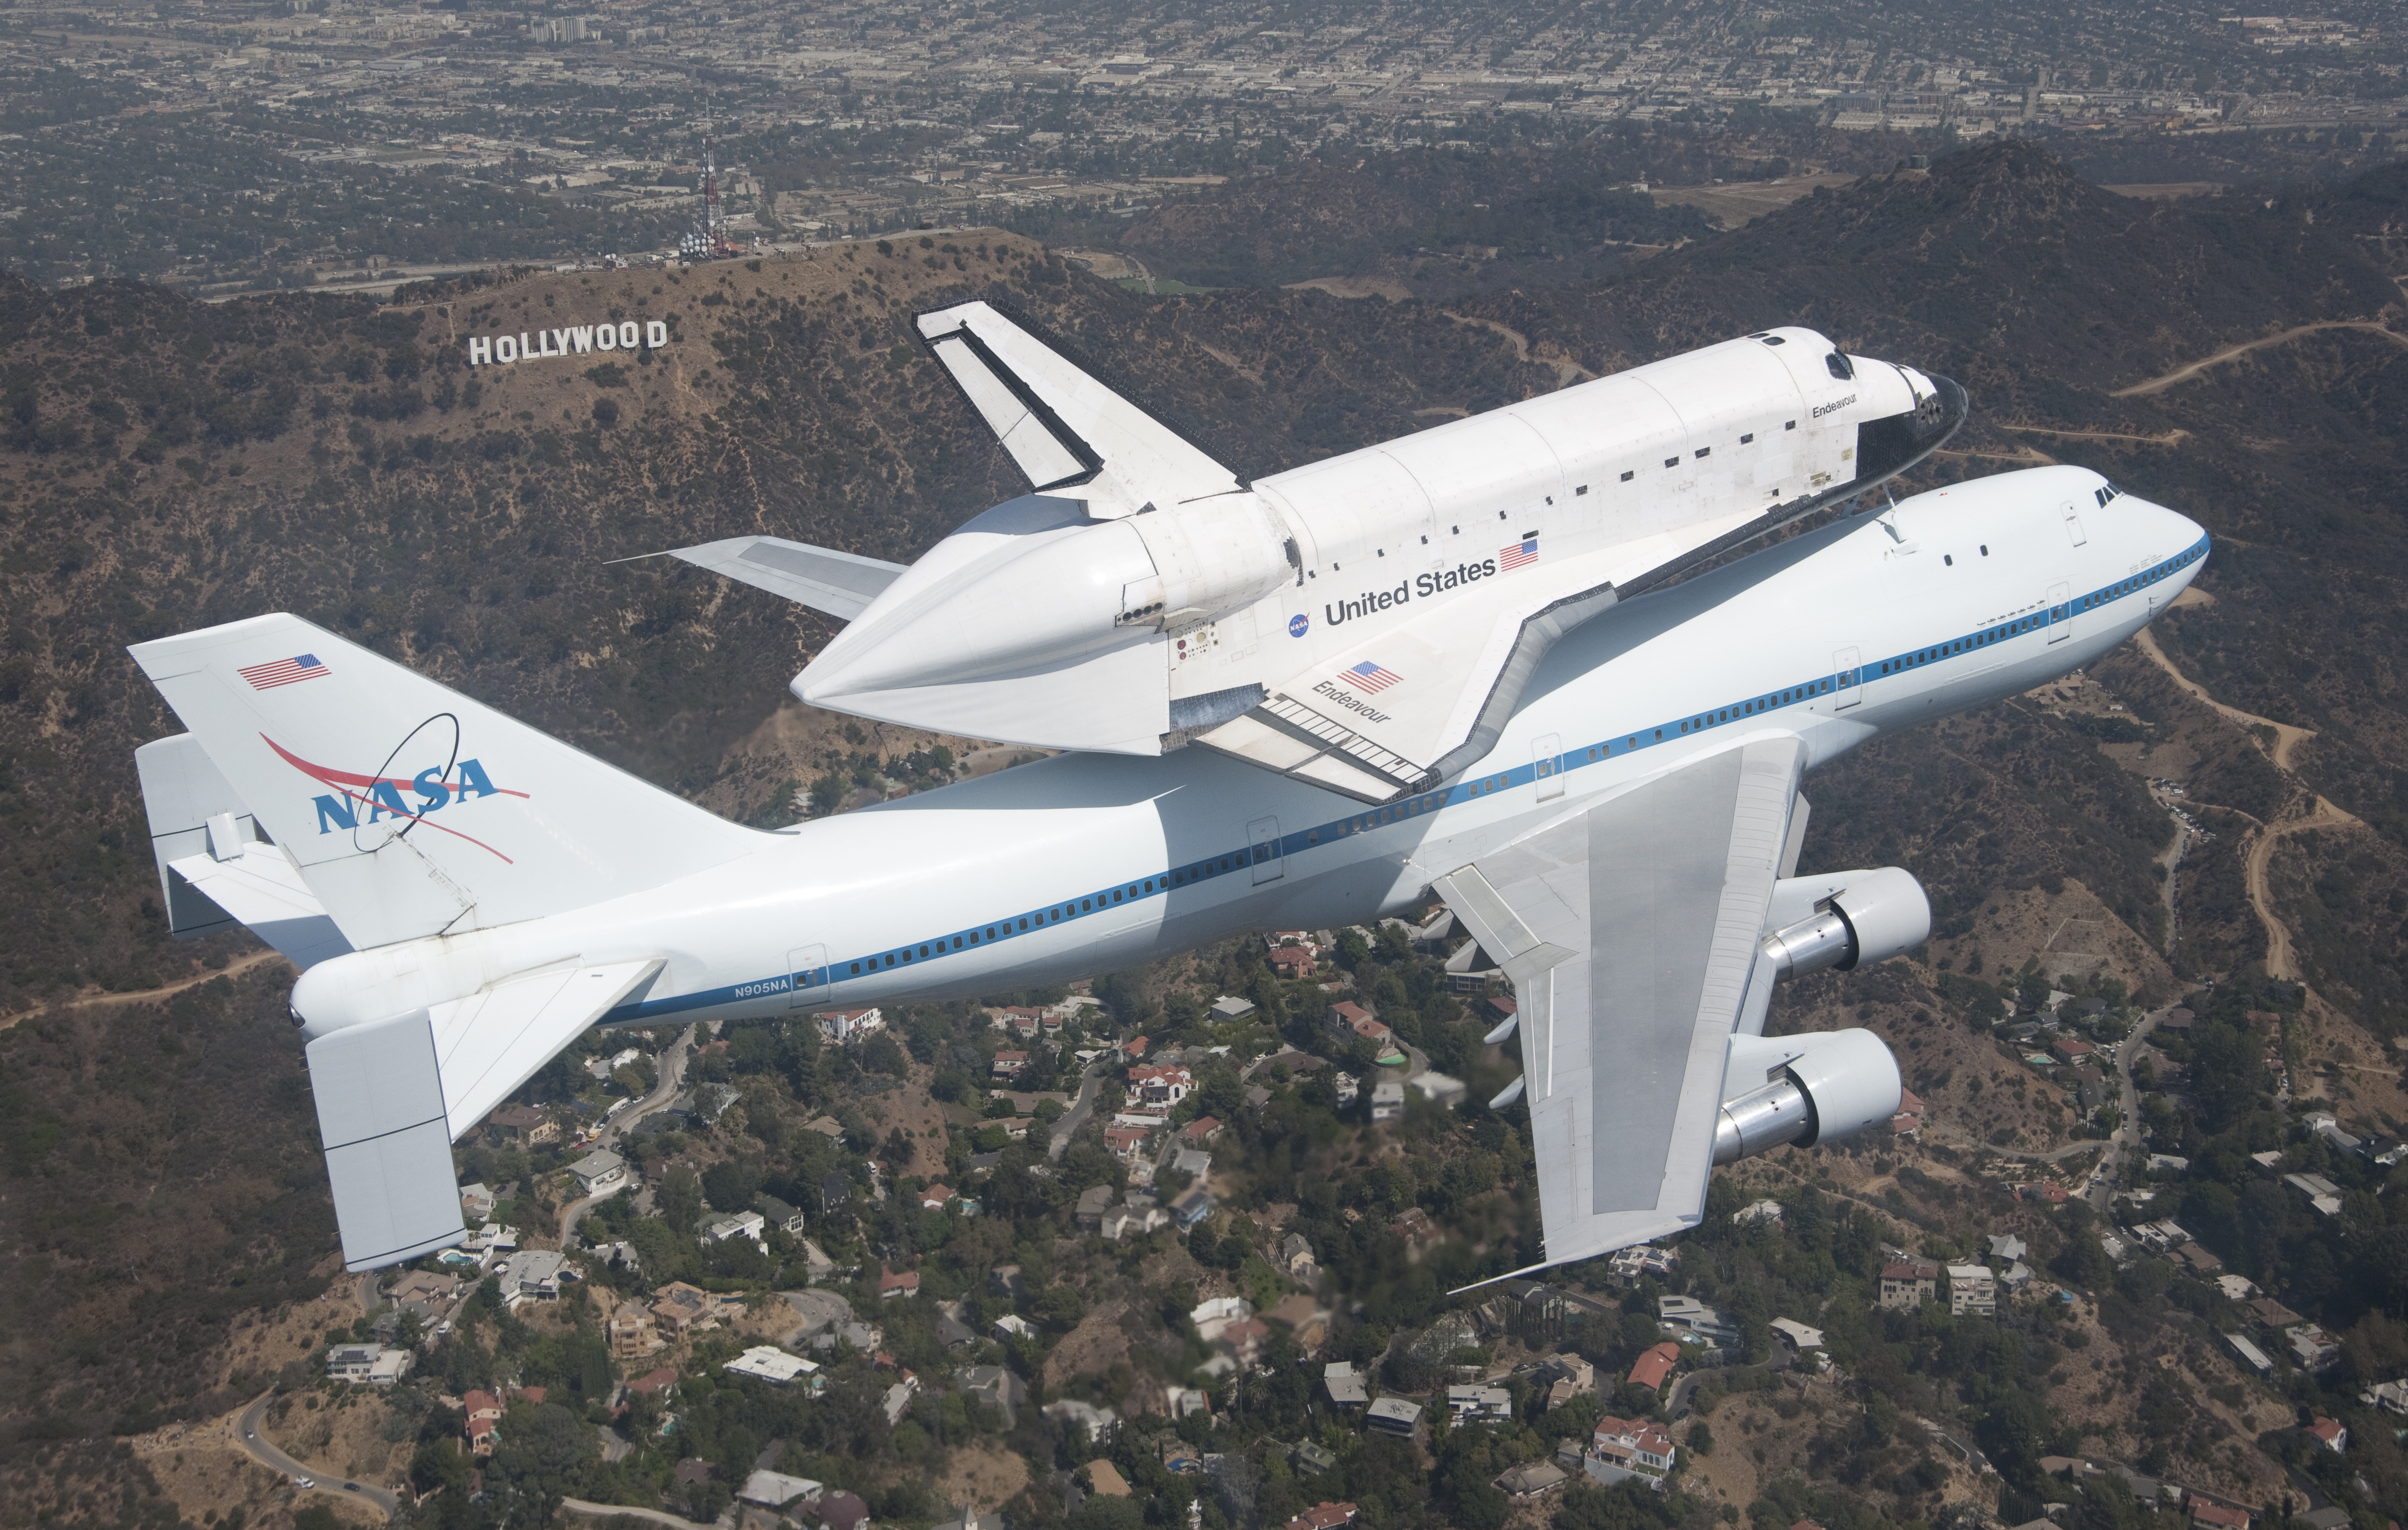 NASA Dryden in 2012: Contributing to Aerospace and Science ...